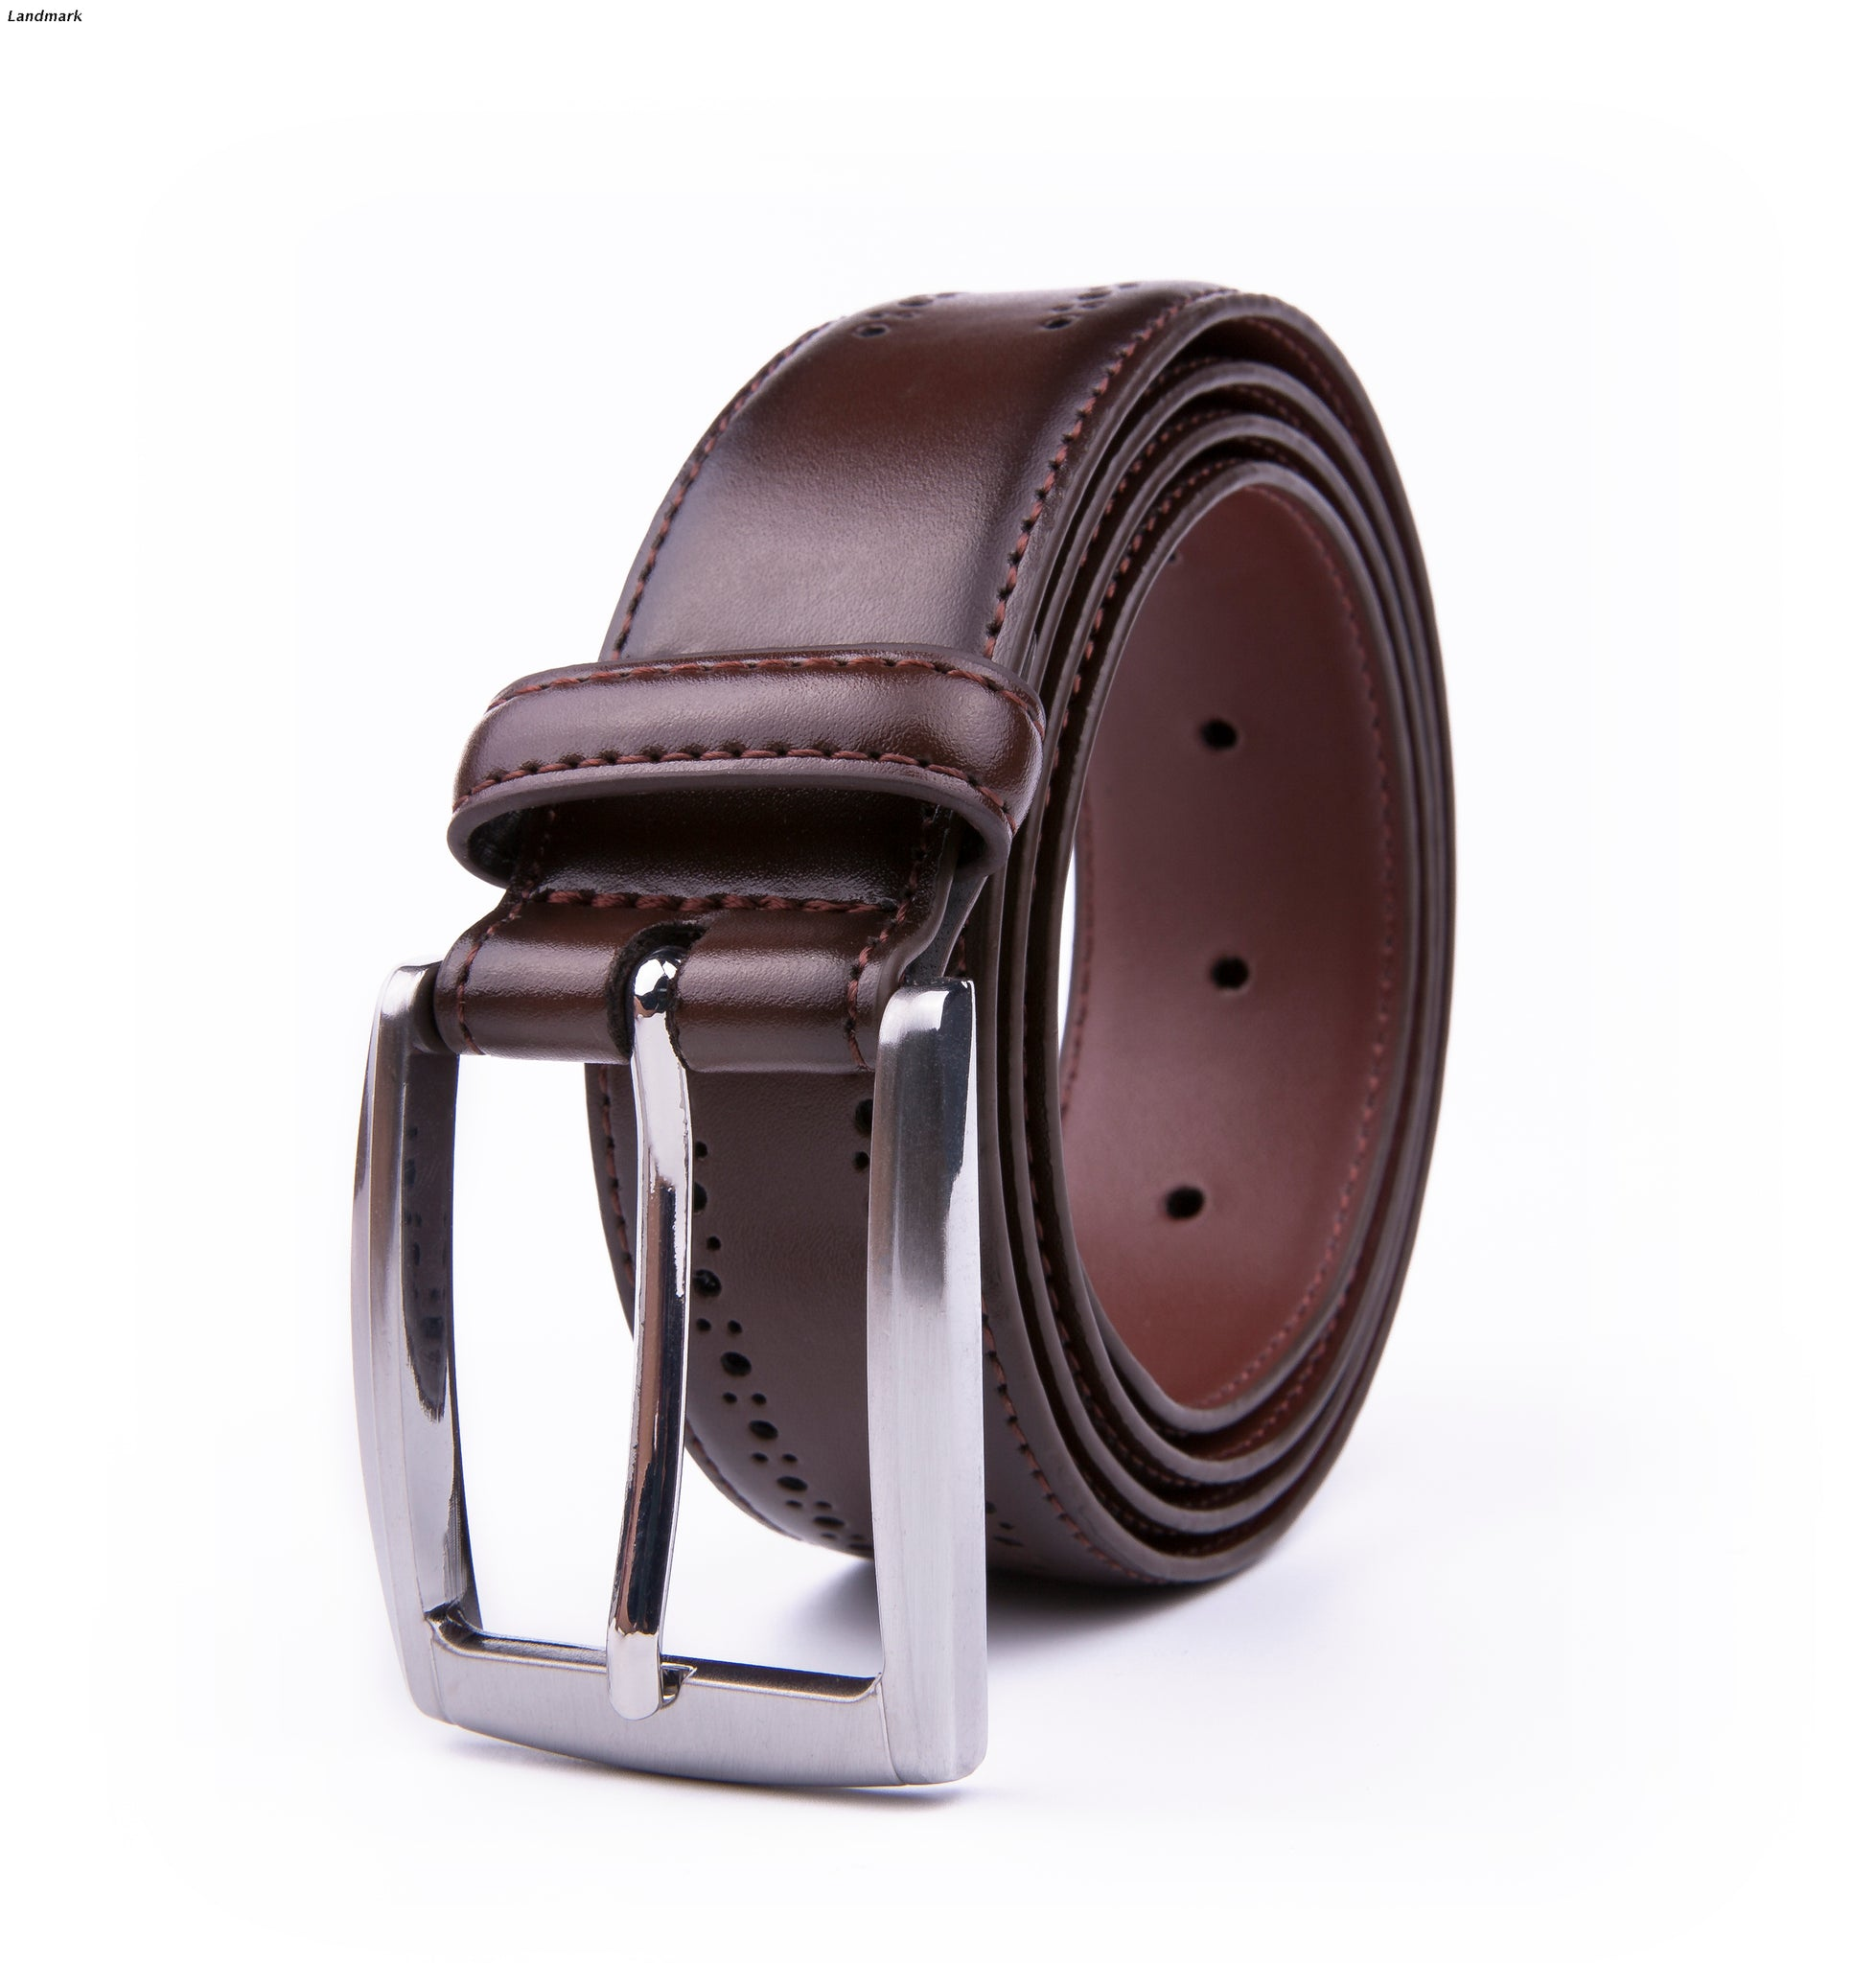 Perforated Brown Leather Belt - Rainwater's Men's Clothing and Tuxedo Rental